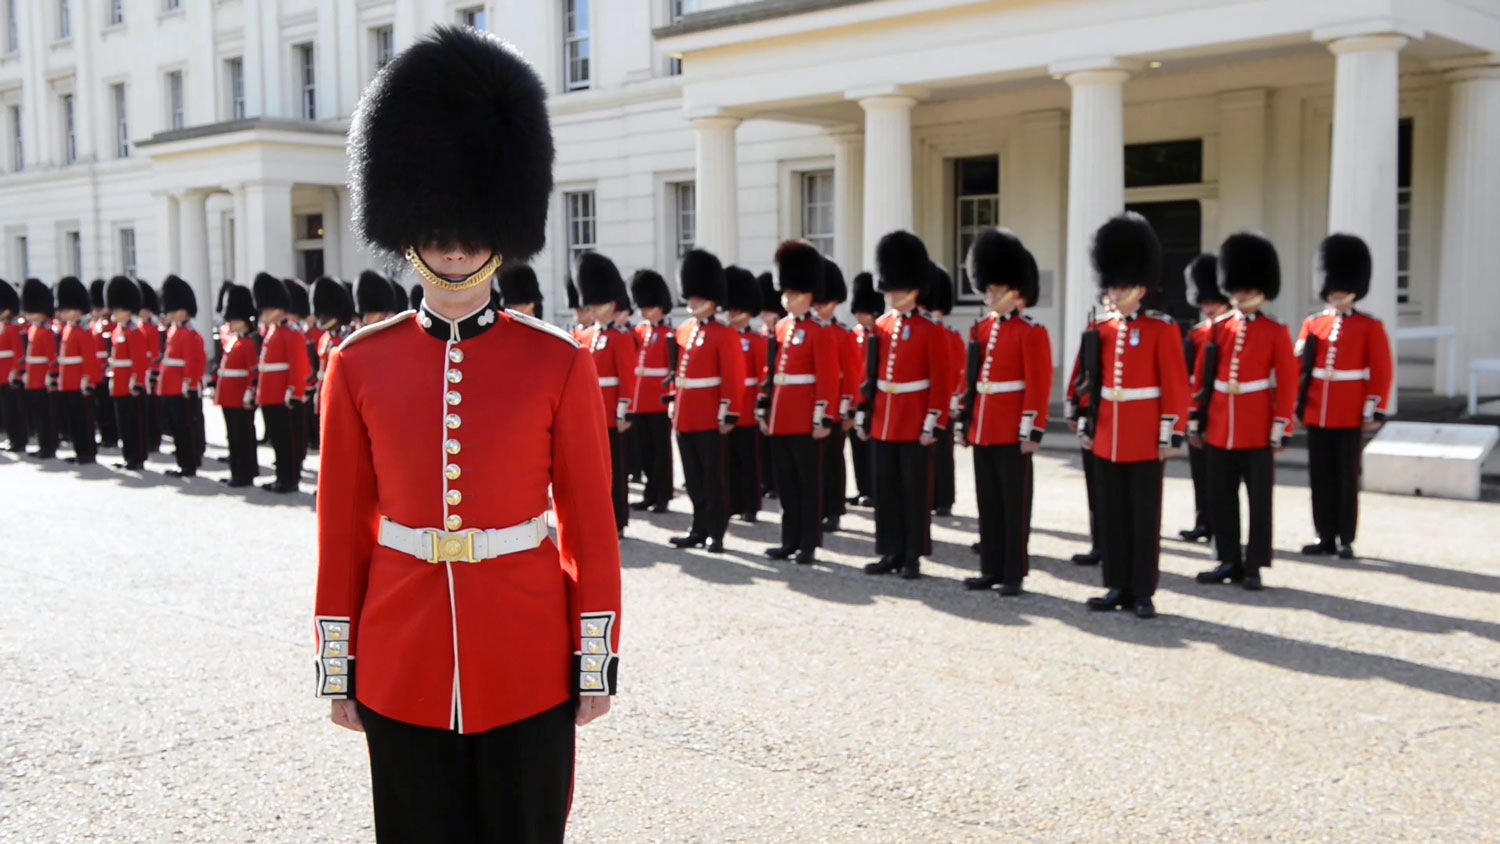 The_British_Grenadier_Guards_on_parade.